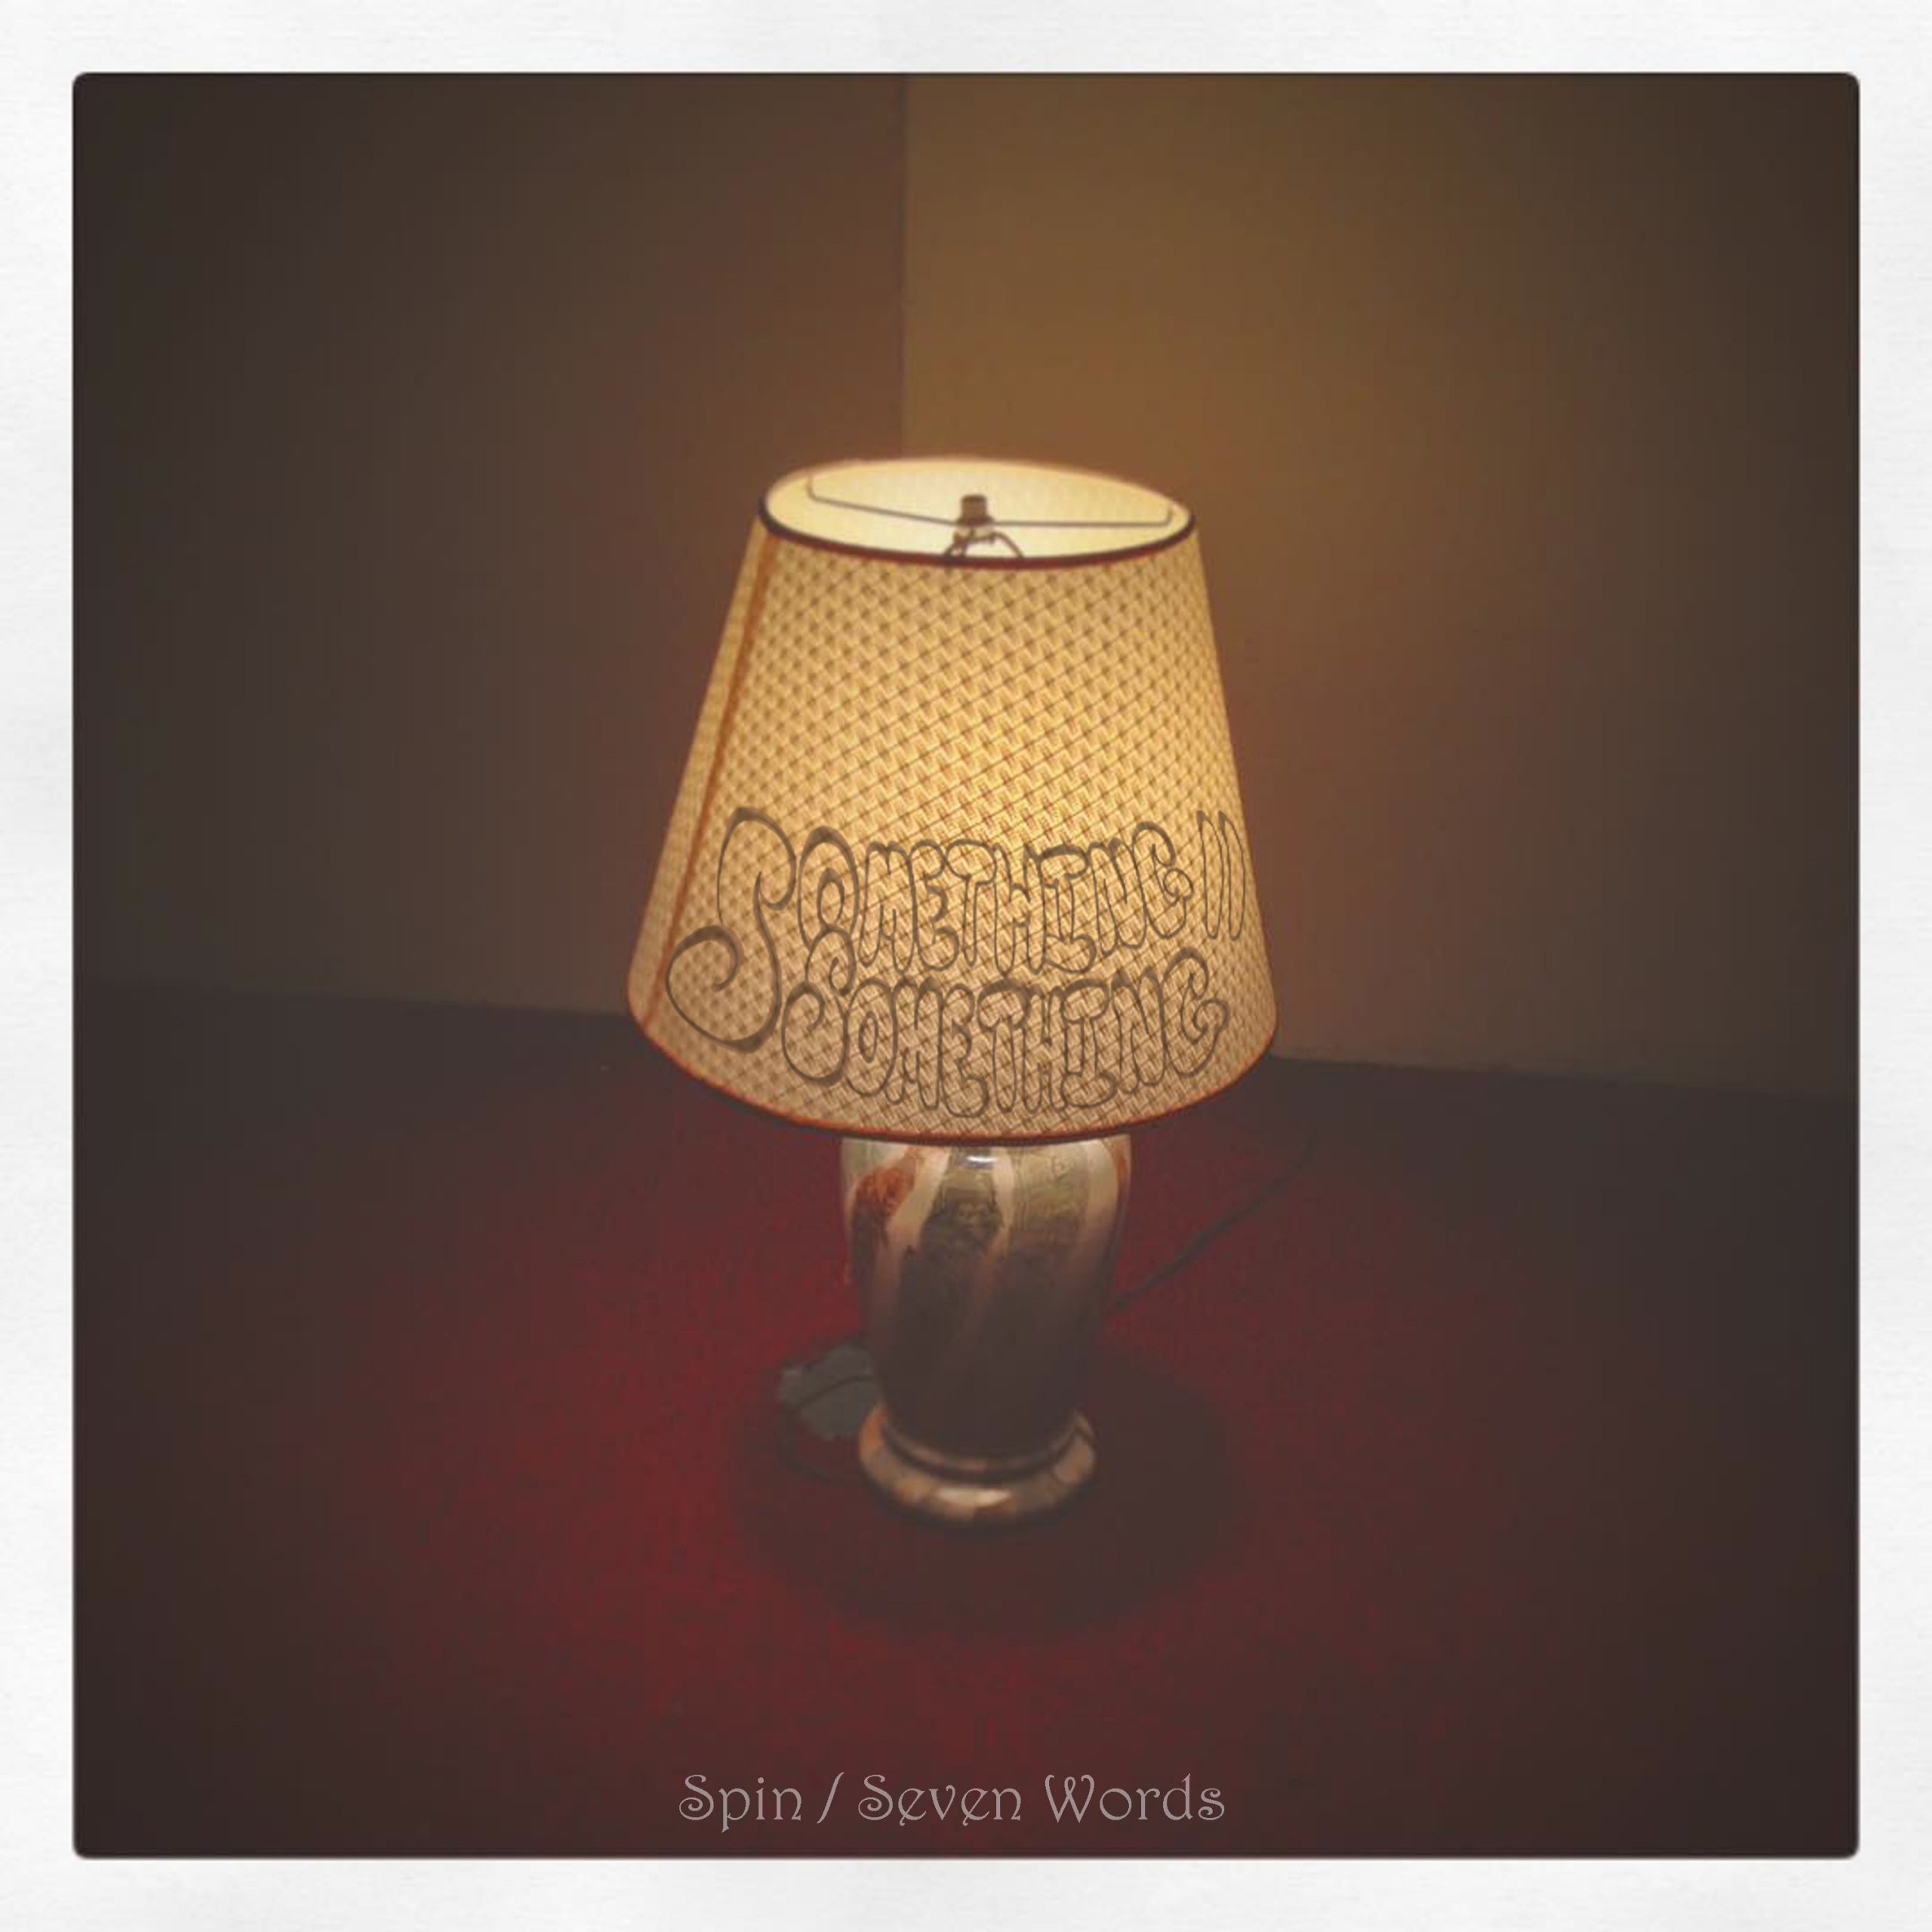 spin seven words single album art is a lamp in an empty room with the something something logo font superimposed onto the lampshade